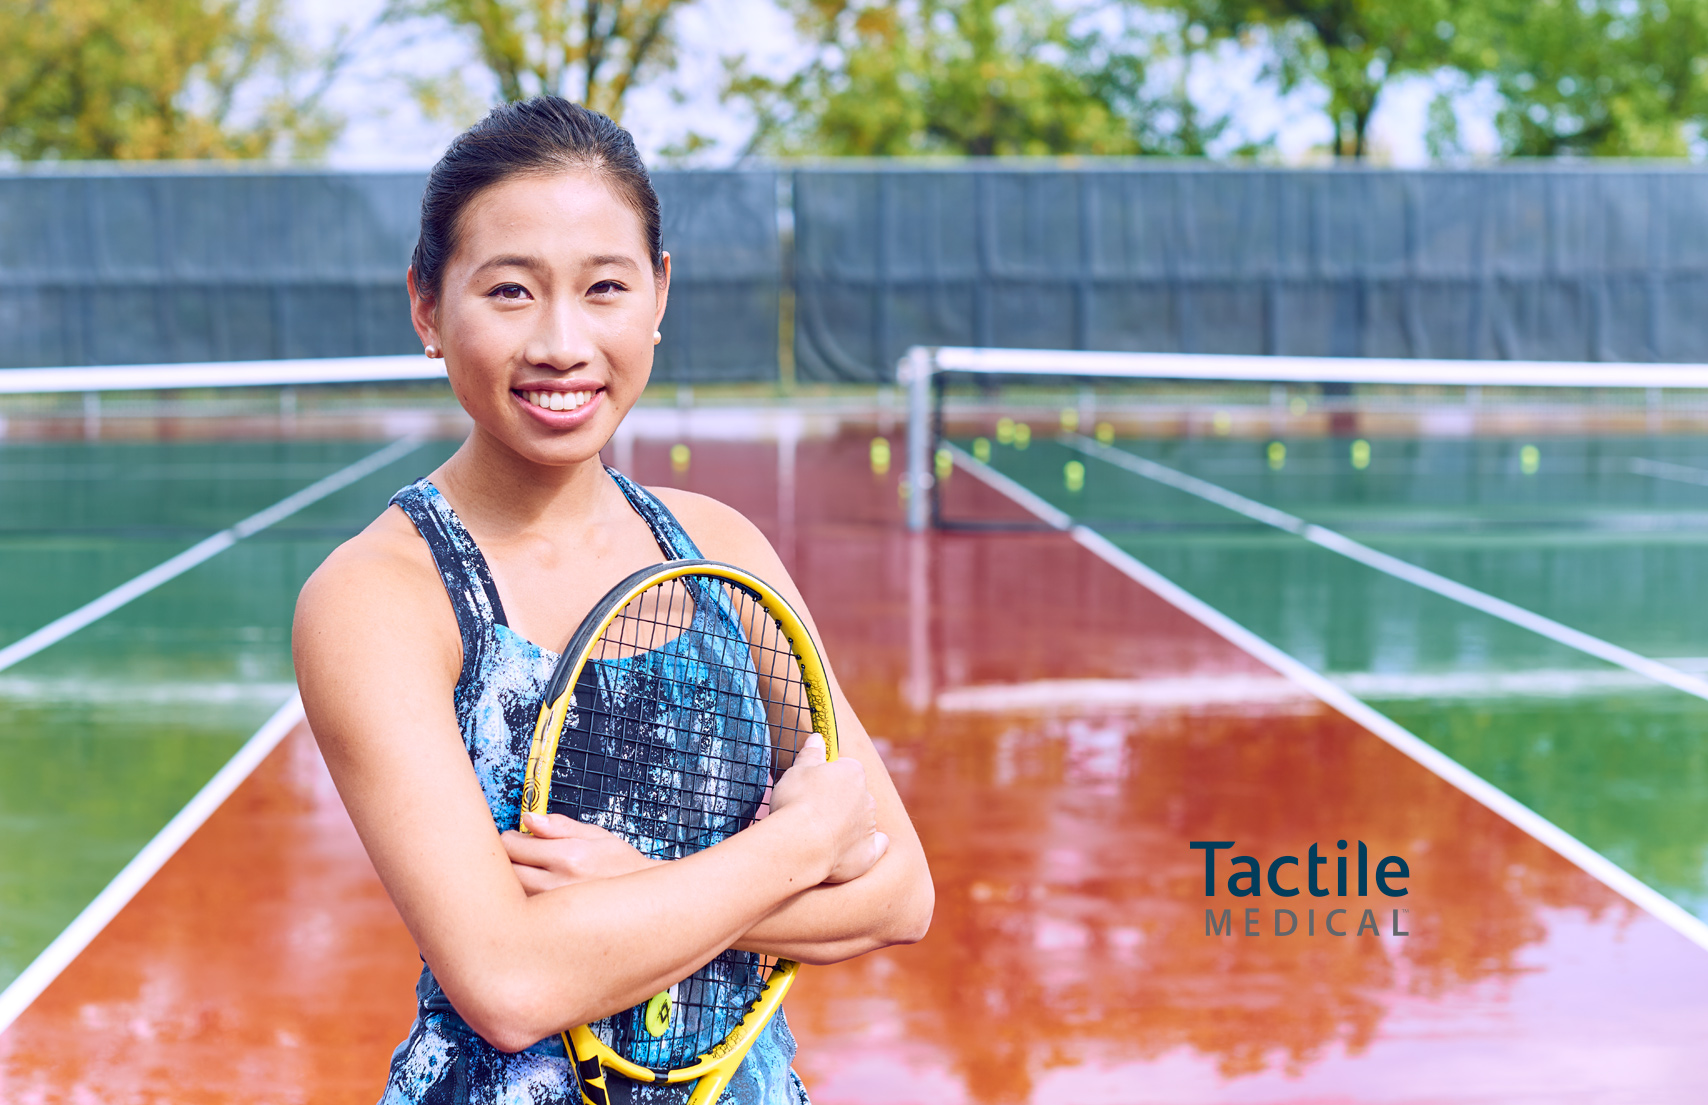 Young Asian Woman Tennis Player Court Racket Healthcare Tactile Medical